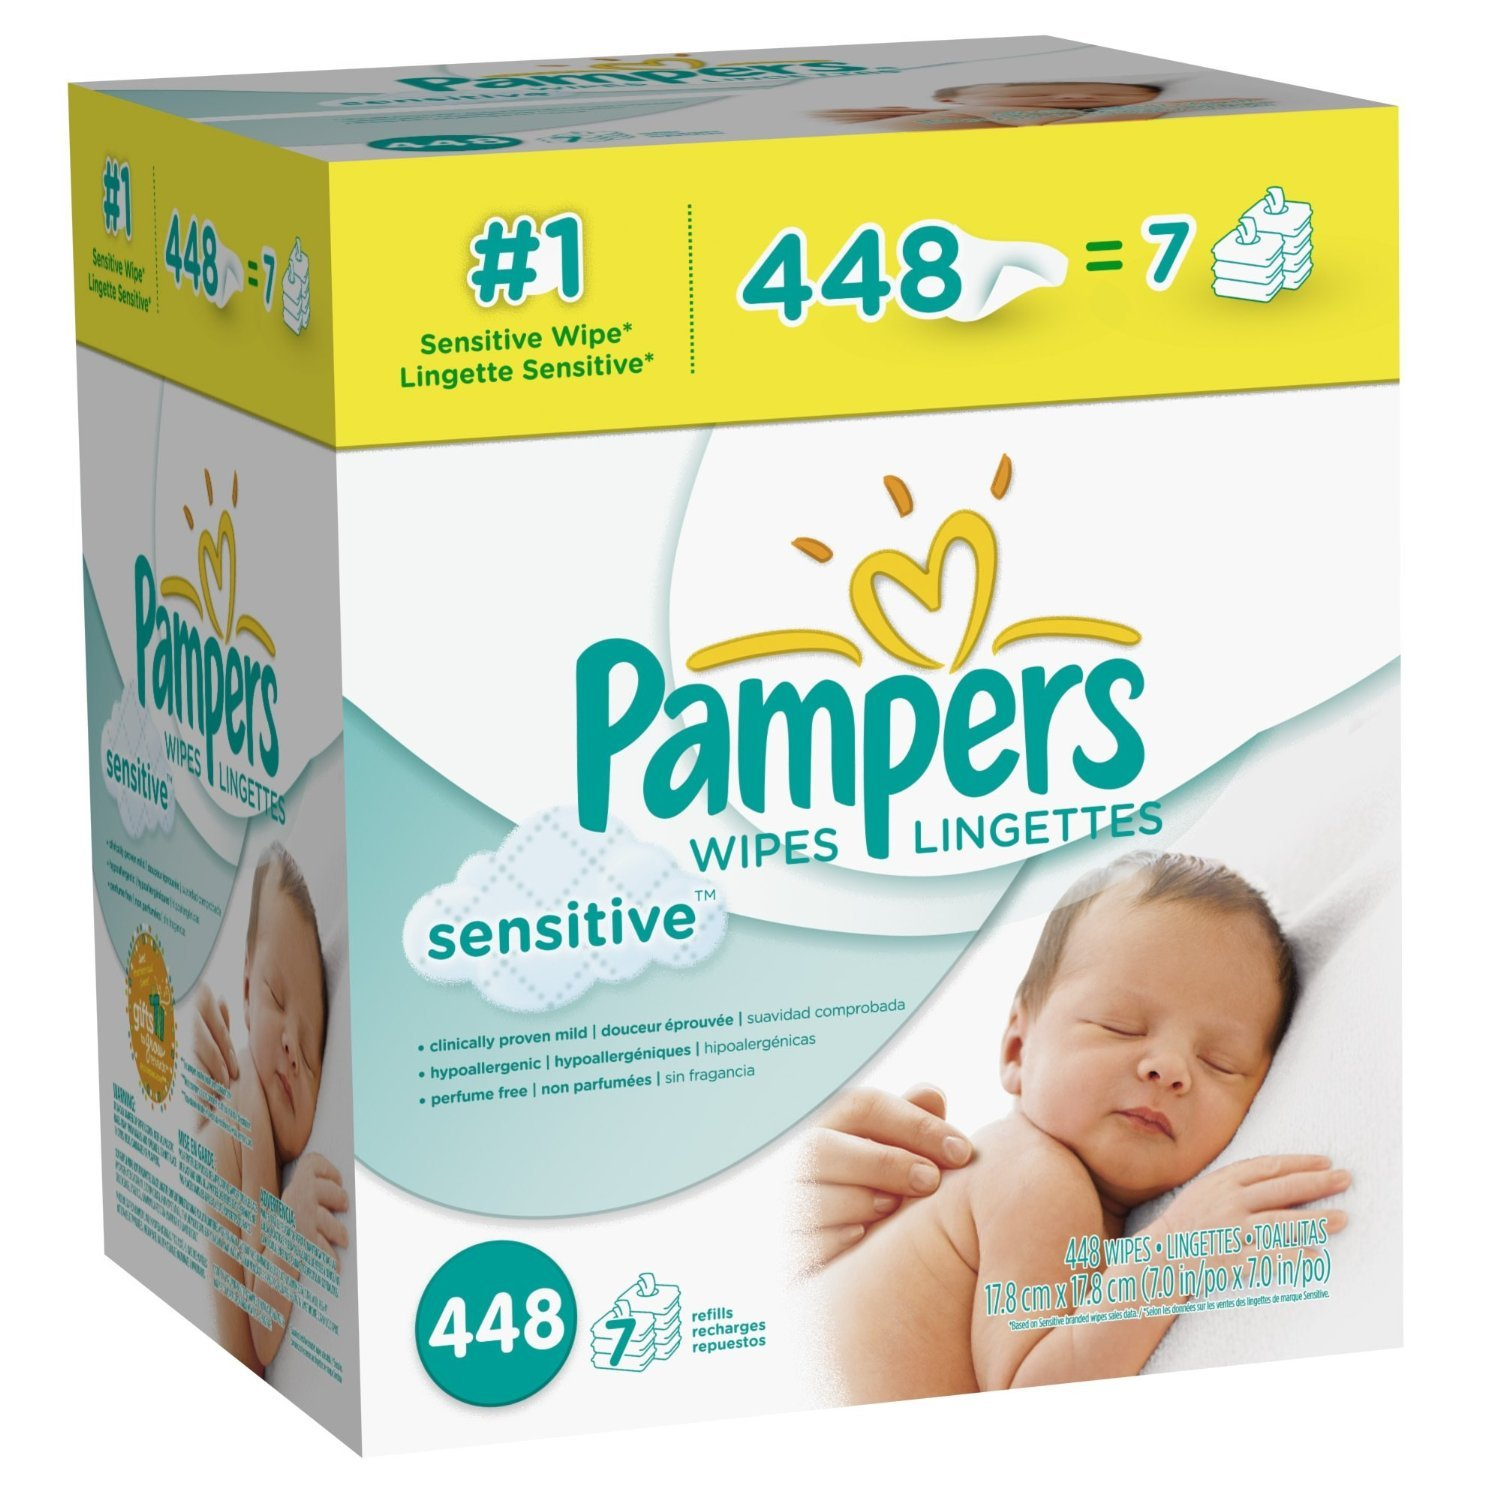 Amazon.com: Pampers Sensitive 896 wipes / Lingettes: Health & Personal Care